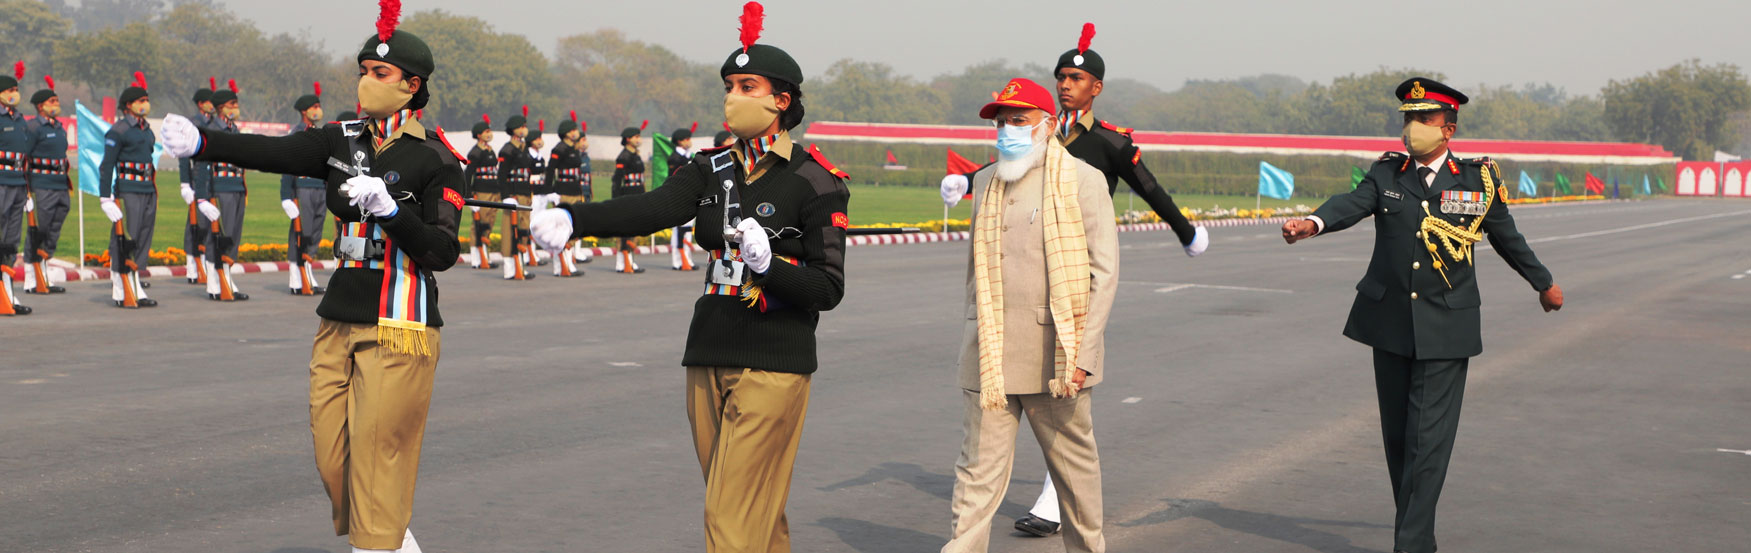 IndiaNCC - National Cadet Corps